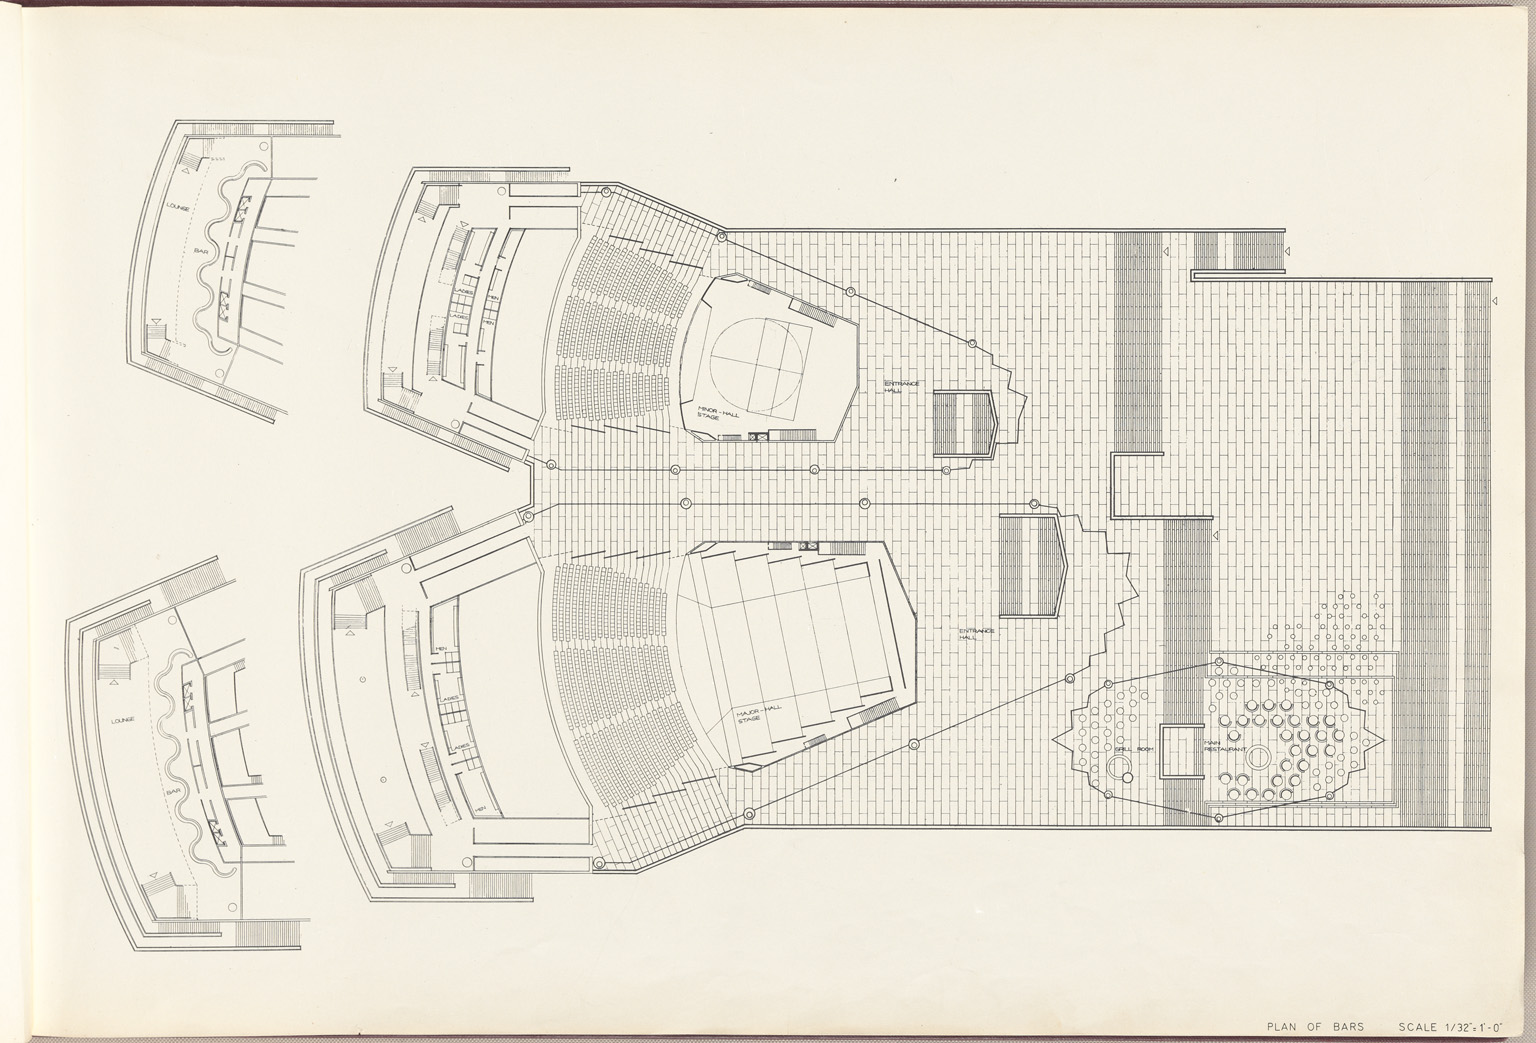 Plan of bars Sydney Opera House Red Book